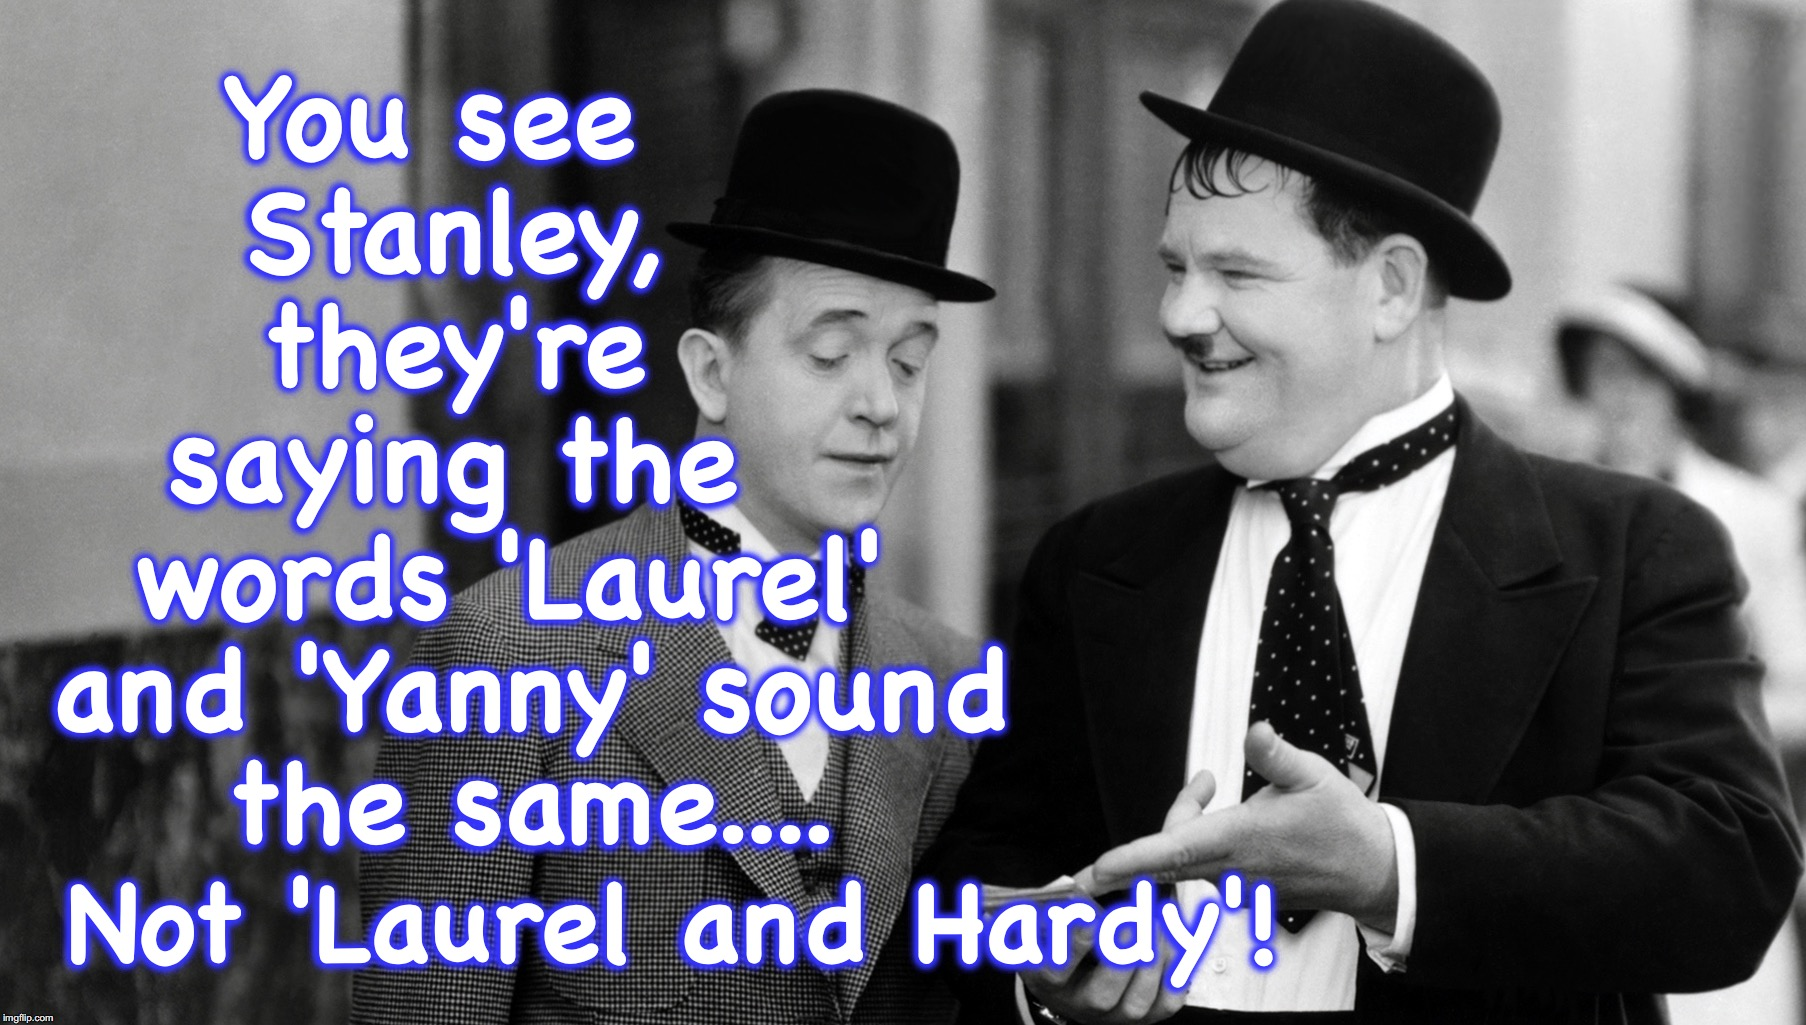 You see Stanley, they're saying the Not 'Laurel and Hardy'! words 'Laurel' and 'Yanny' sound the same.... | image tagged in laurel and hardy | made w/ Imgflip meme maker